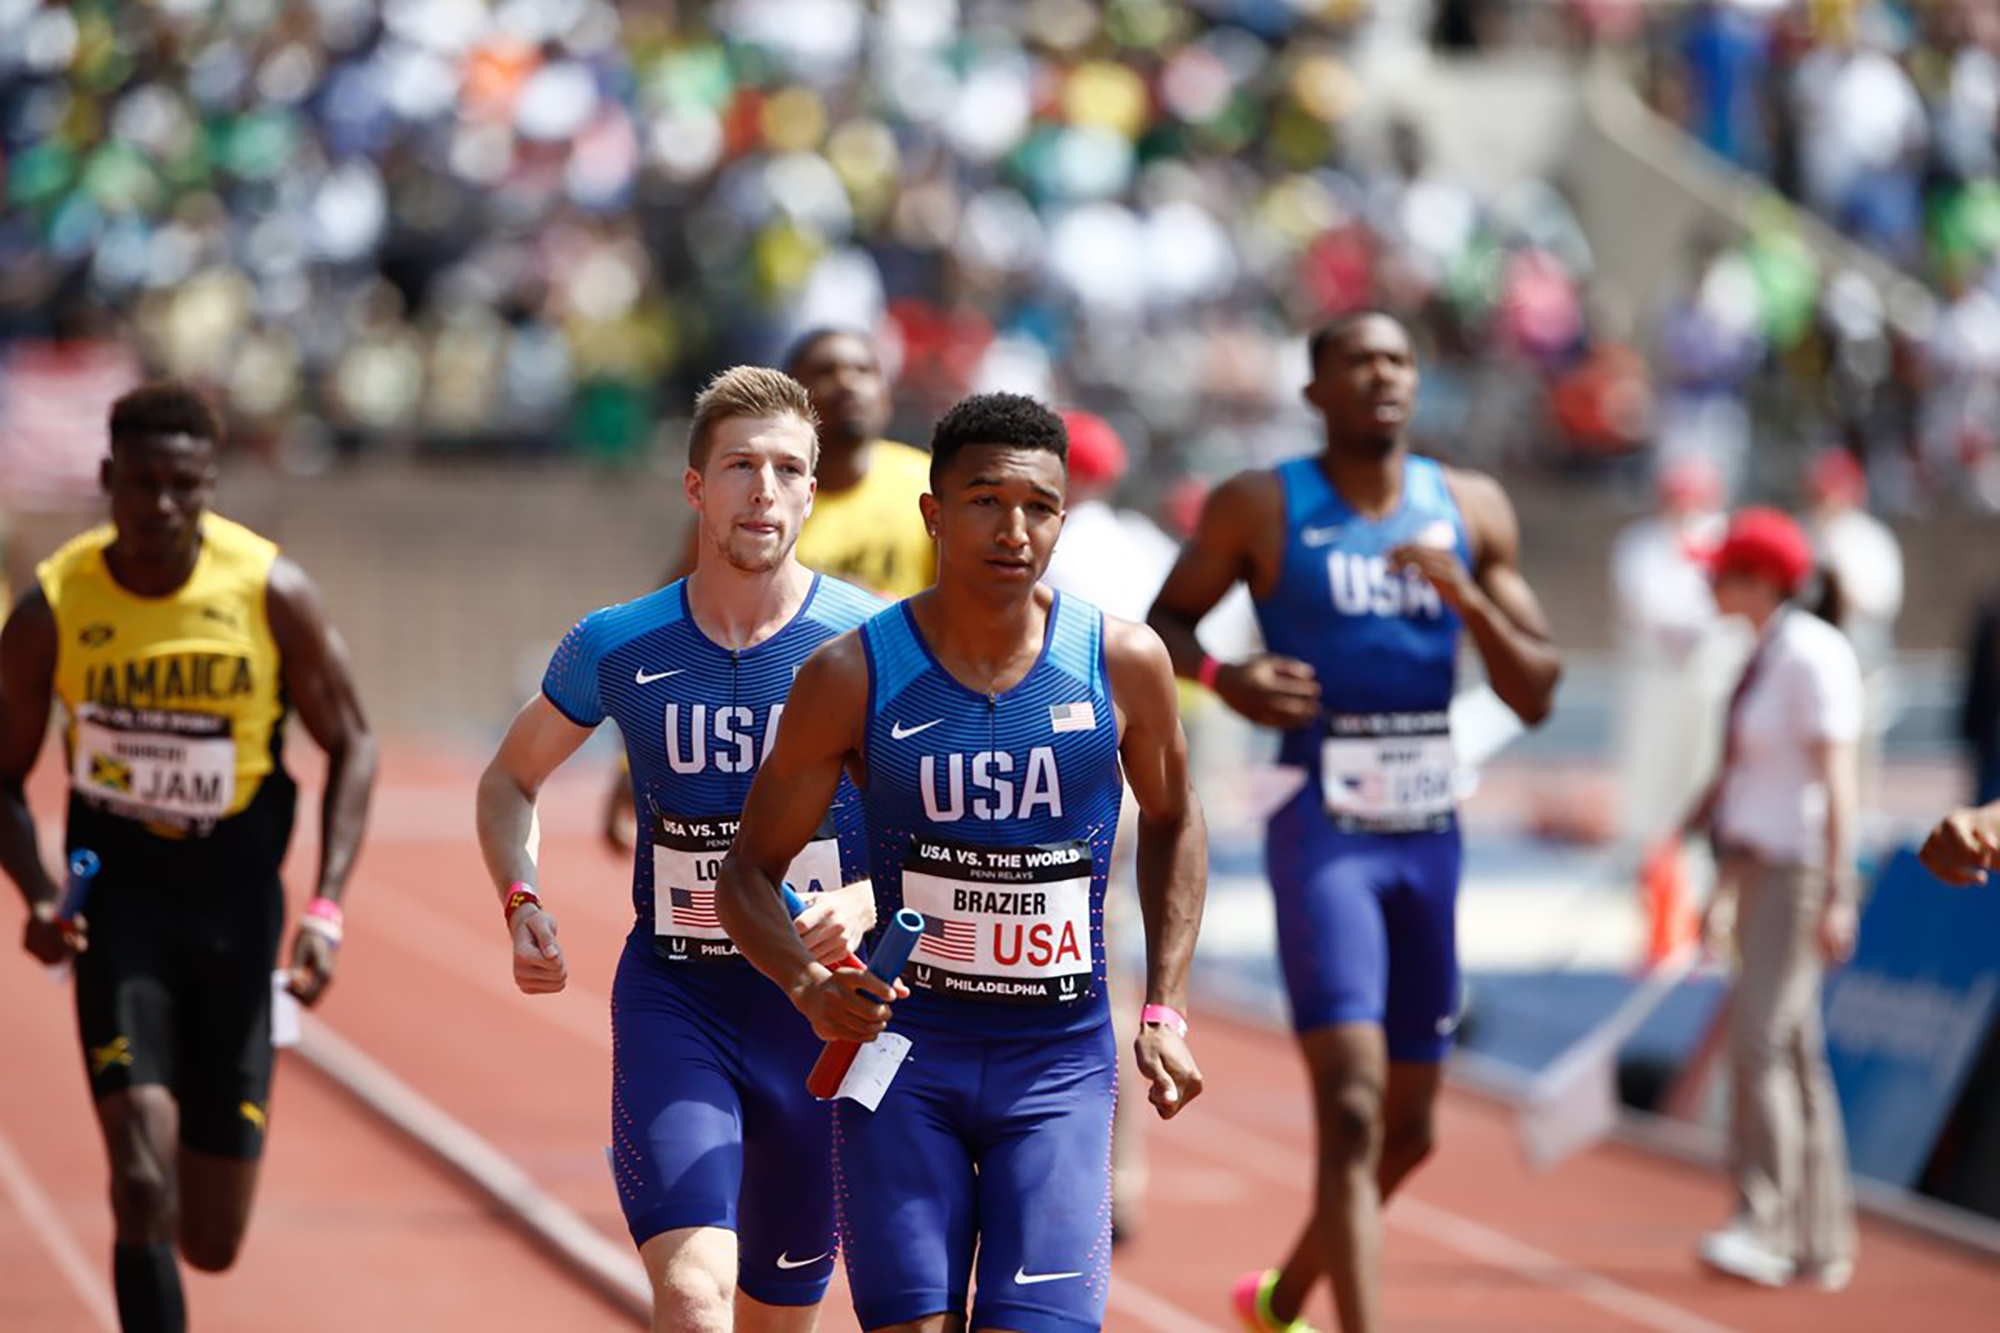 Running numbers at the Penn Relays | Penn Today